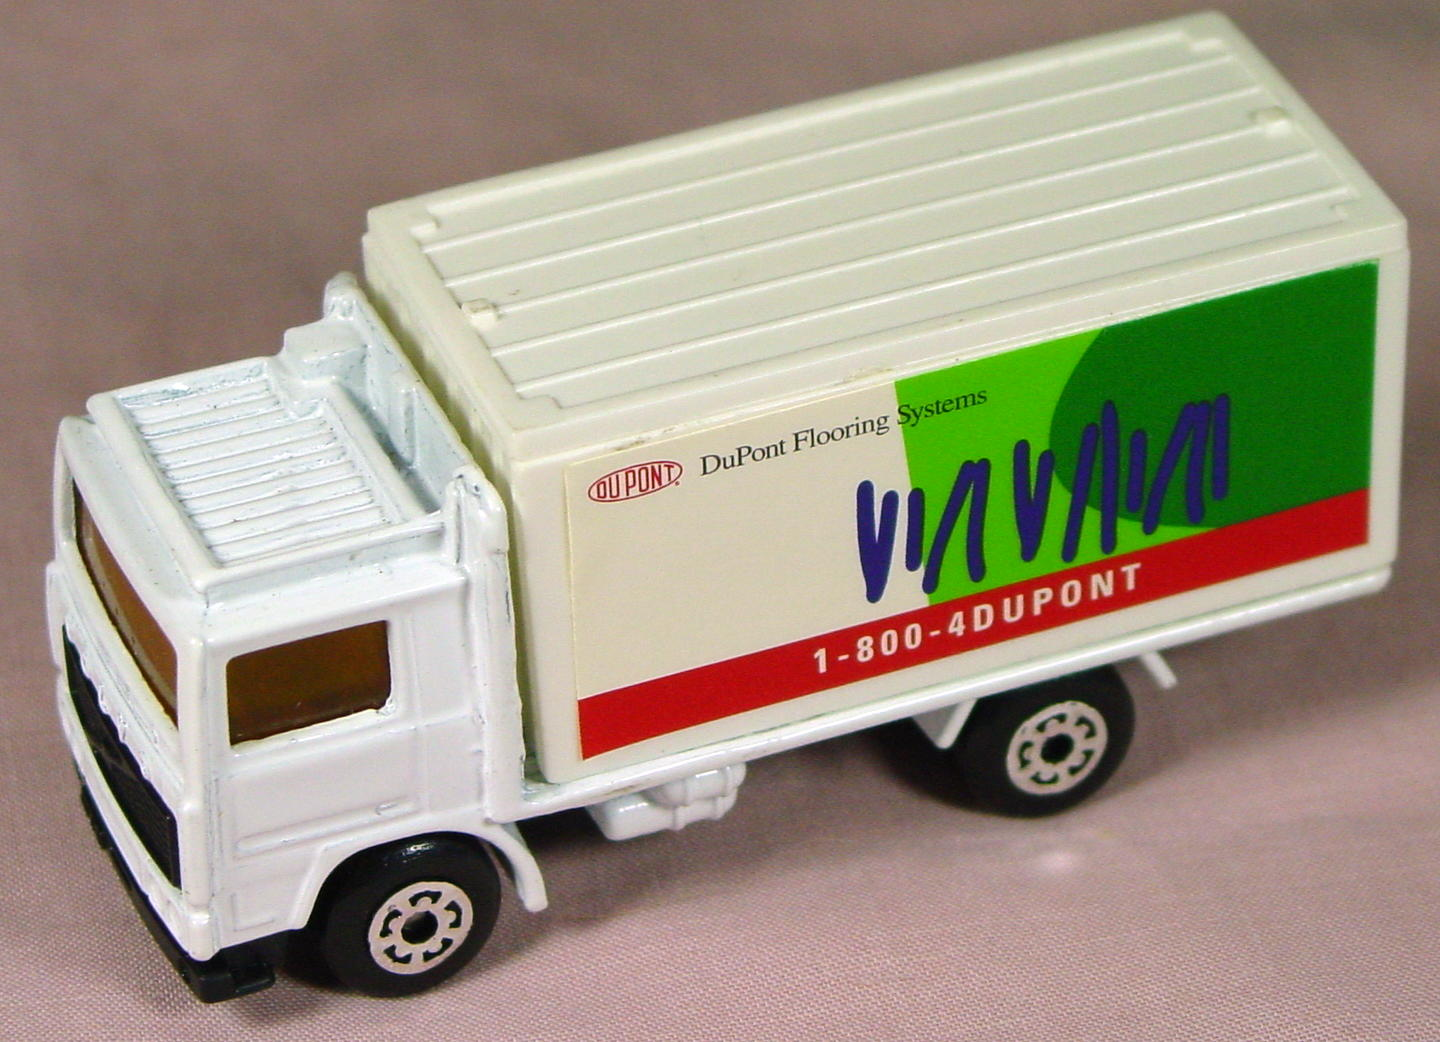 ASAP-CCI 20 D 44 - Volvo Cont Truck White and White Dupont Floor Cov made in China ASAP